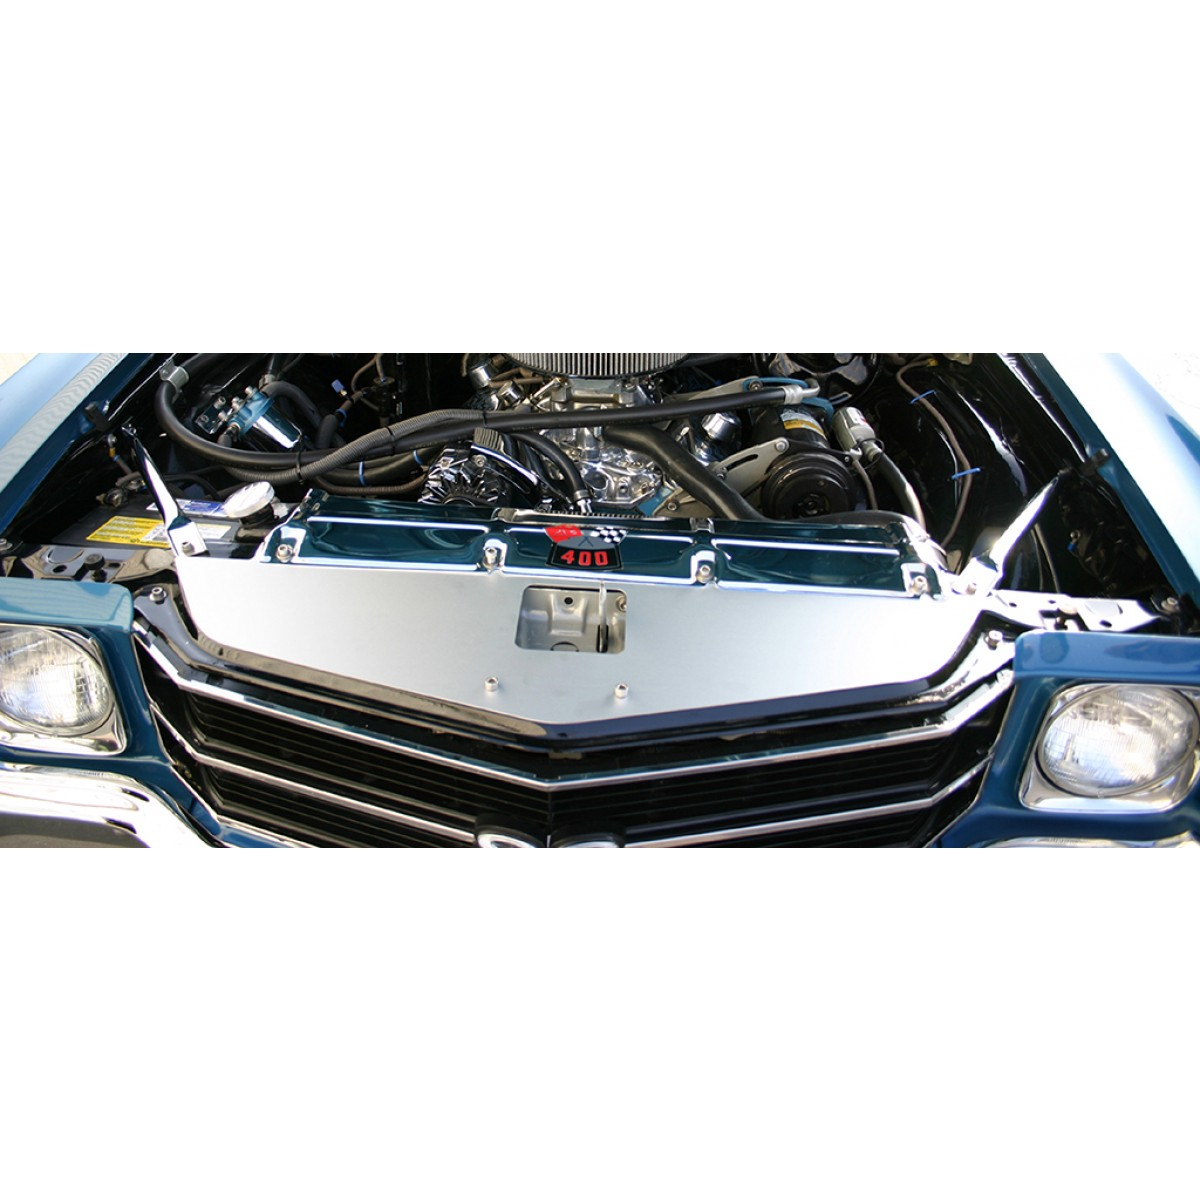 71 Chevelle Wiring Diagram Free Download Schematic Library 1968 Chevy 1970 1972 El Camino Radiator Support Show Panel No Engraving